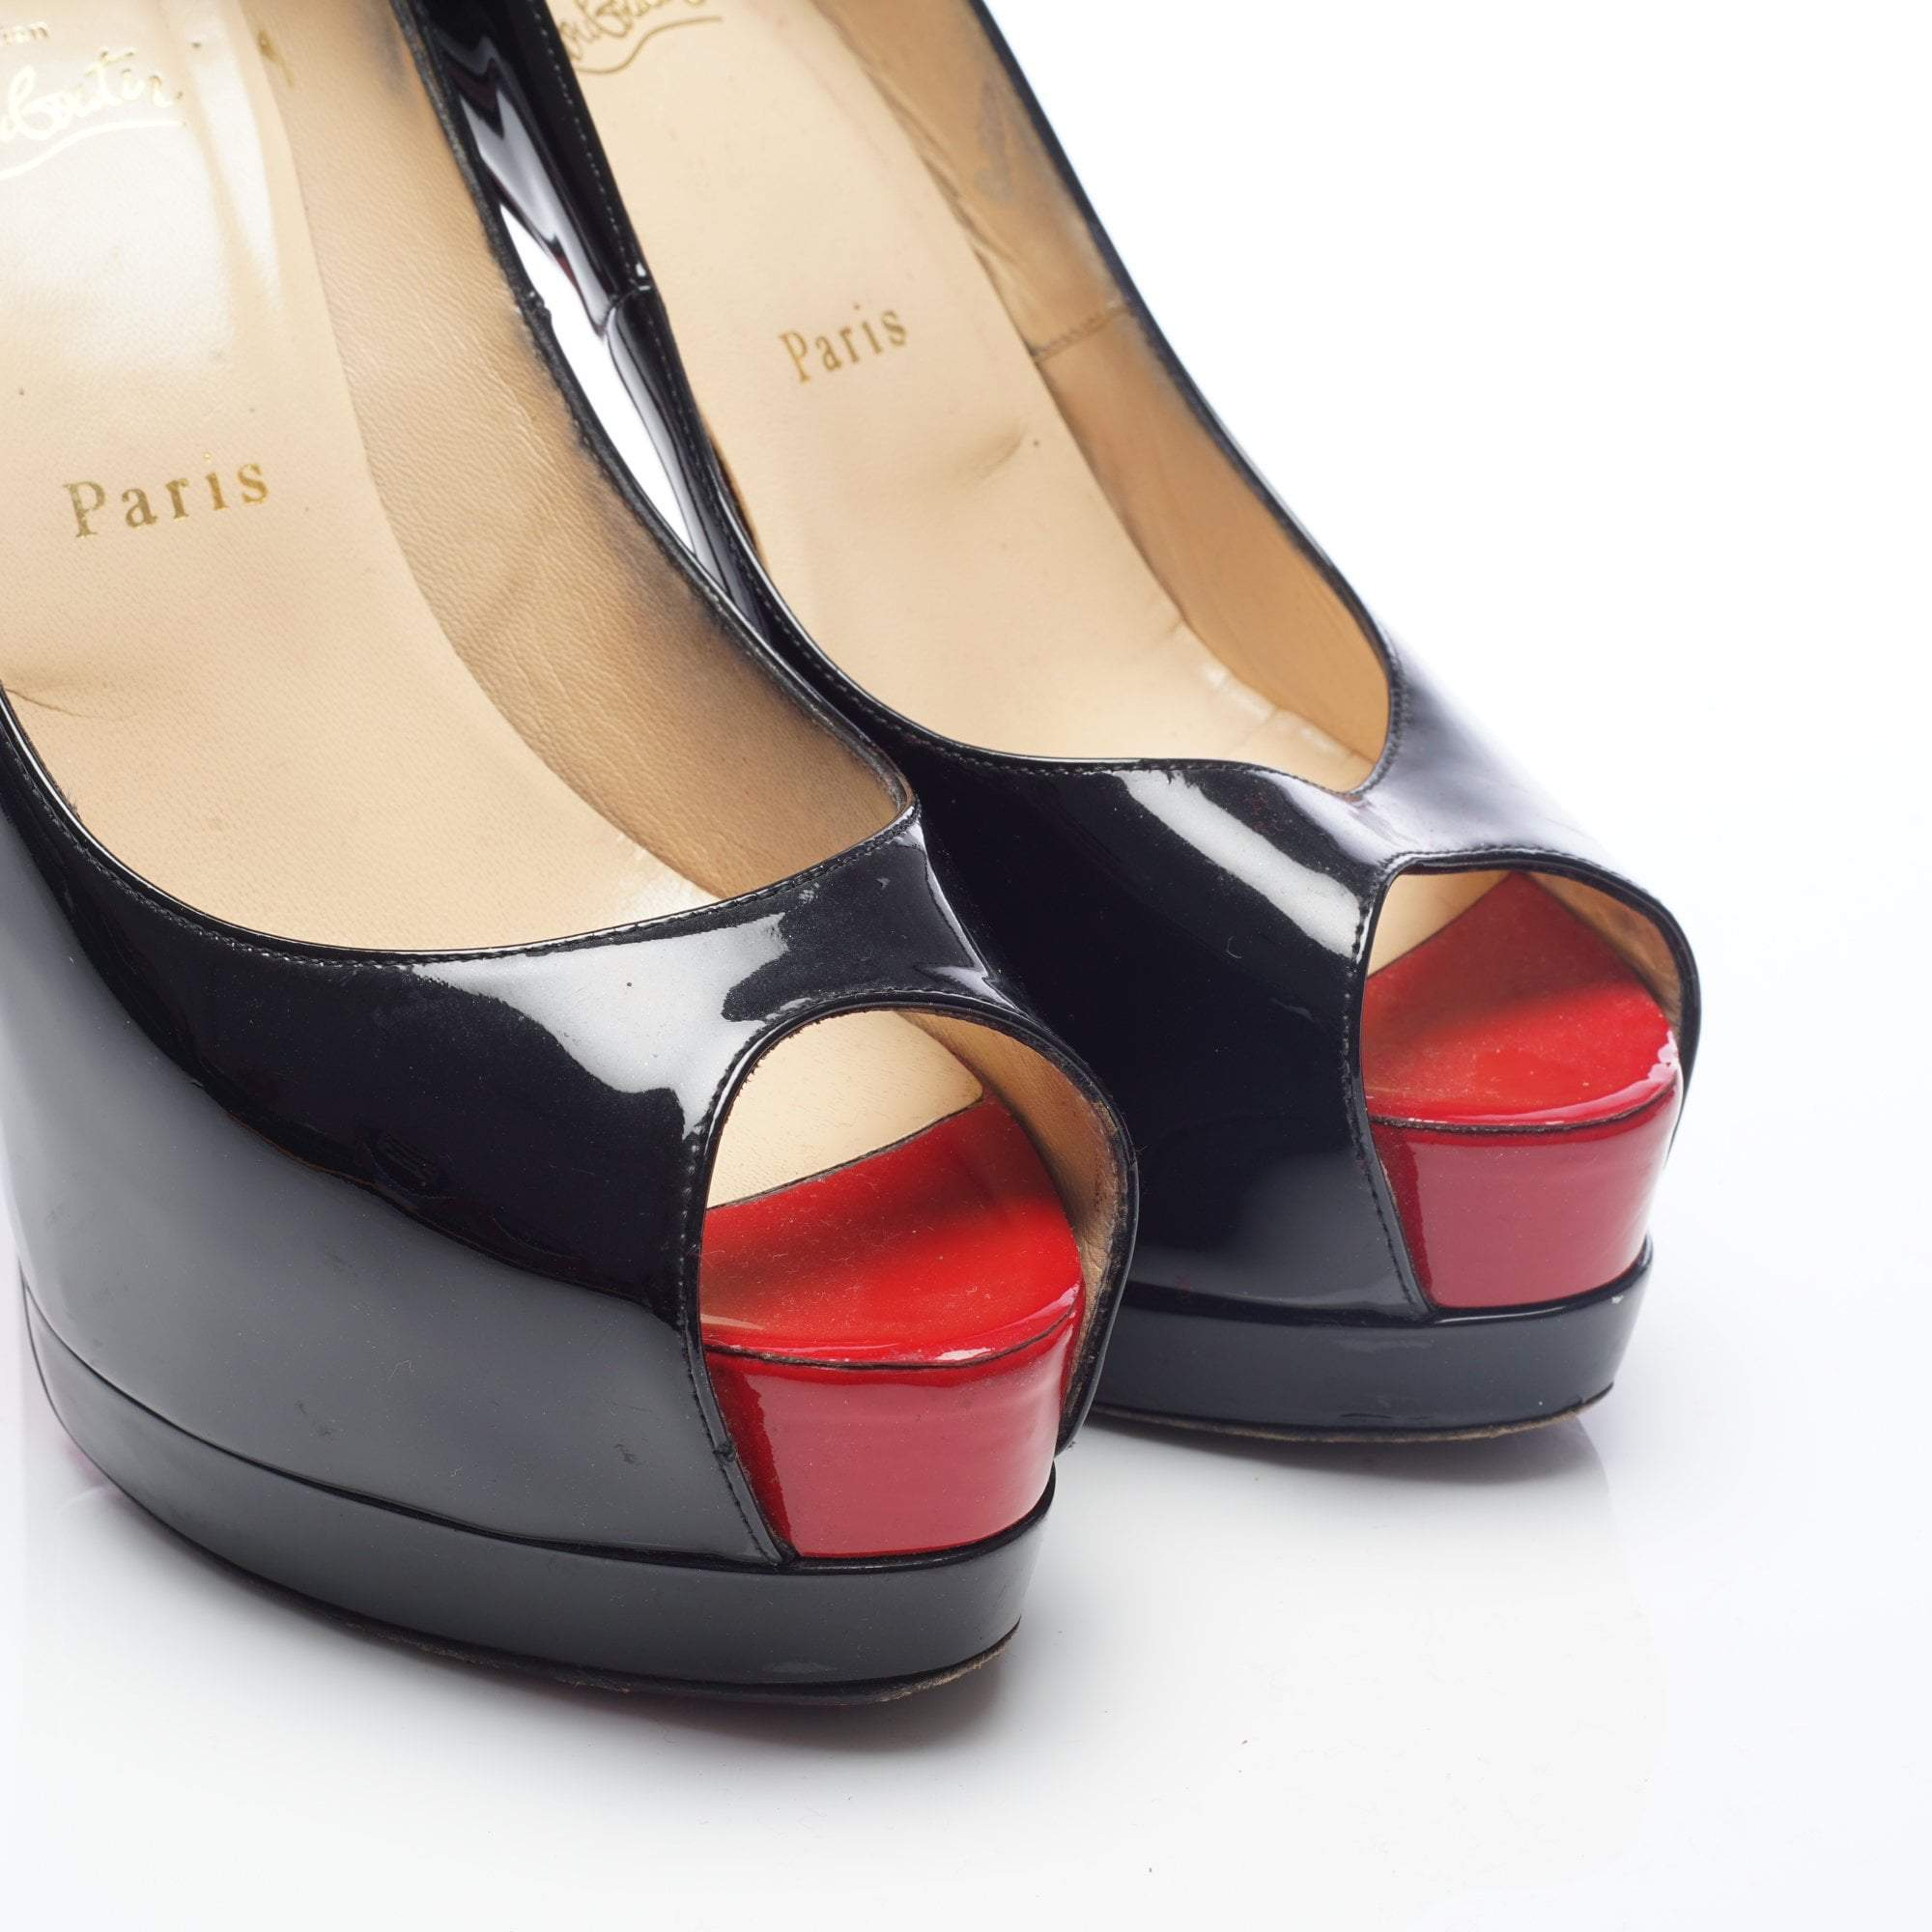 Christian Louboutin Black Patent Leather Peep Toe Pumps